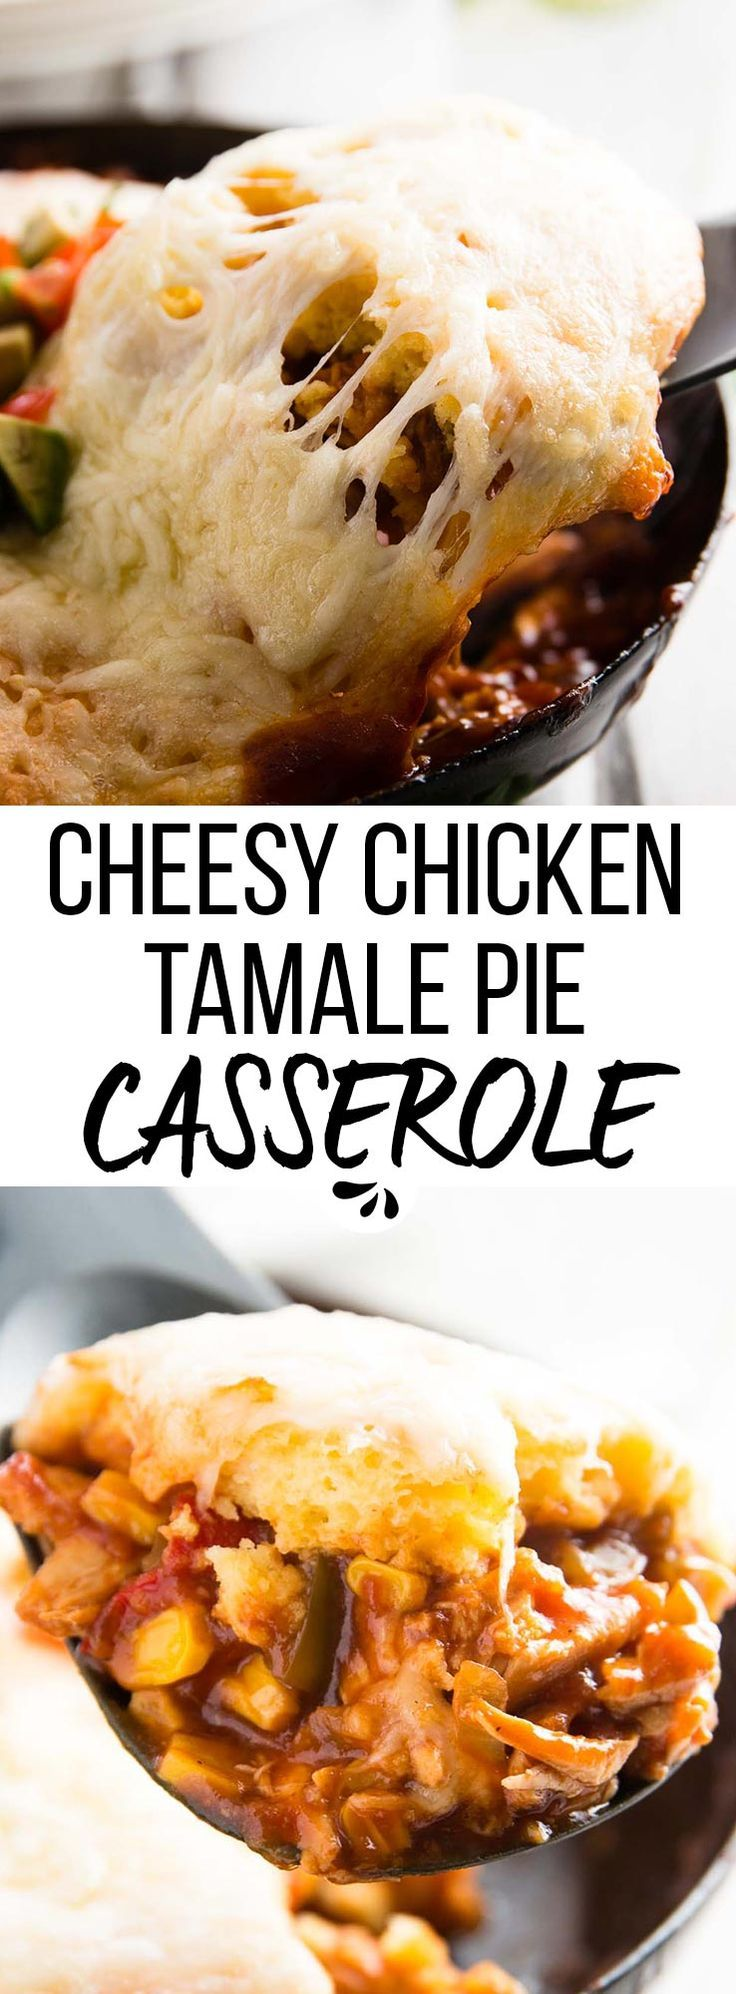 Make dinner time easy with this Cheesy Cornbread Chicken Tamale Pie Casserole recipe! Full of delicious flavors your whole family will love! So great how quick this comes together, and how easy to make with the BBQ sauce?! The cornbread topping takes this dinner recipe to the next level.